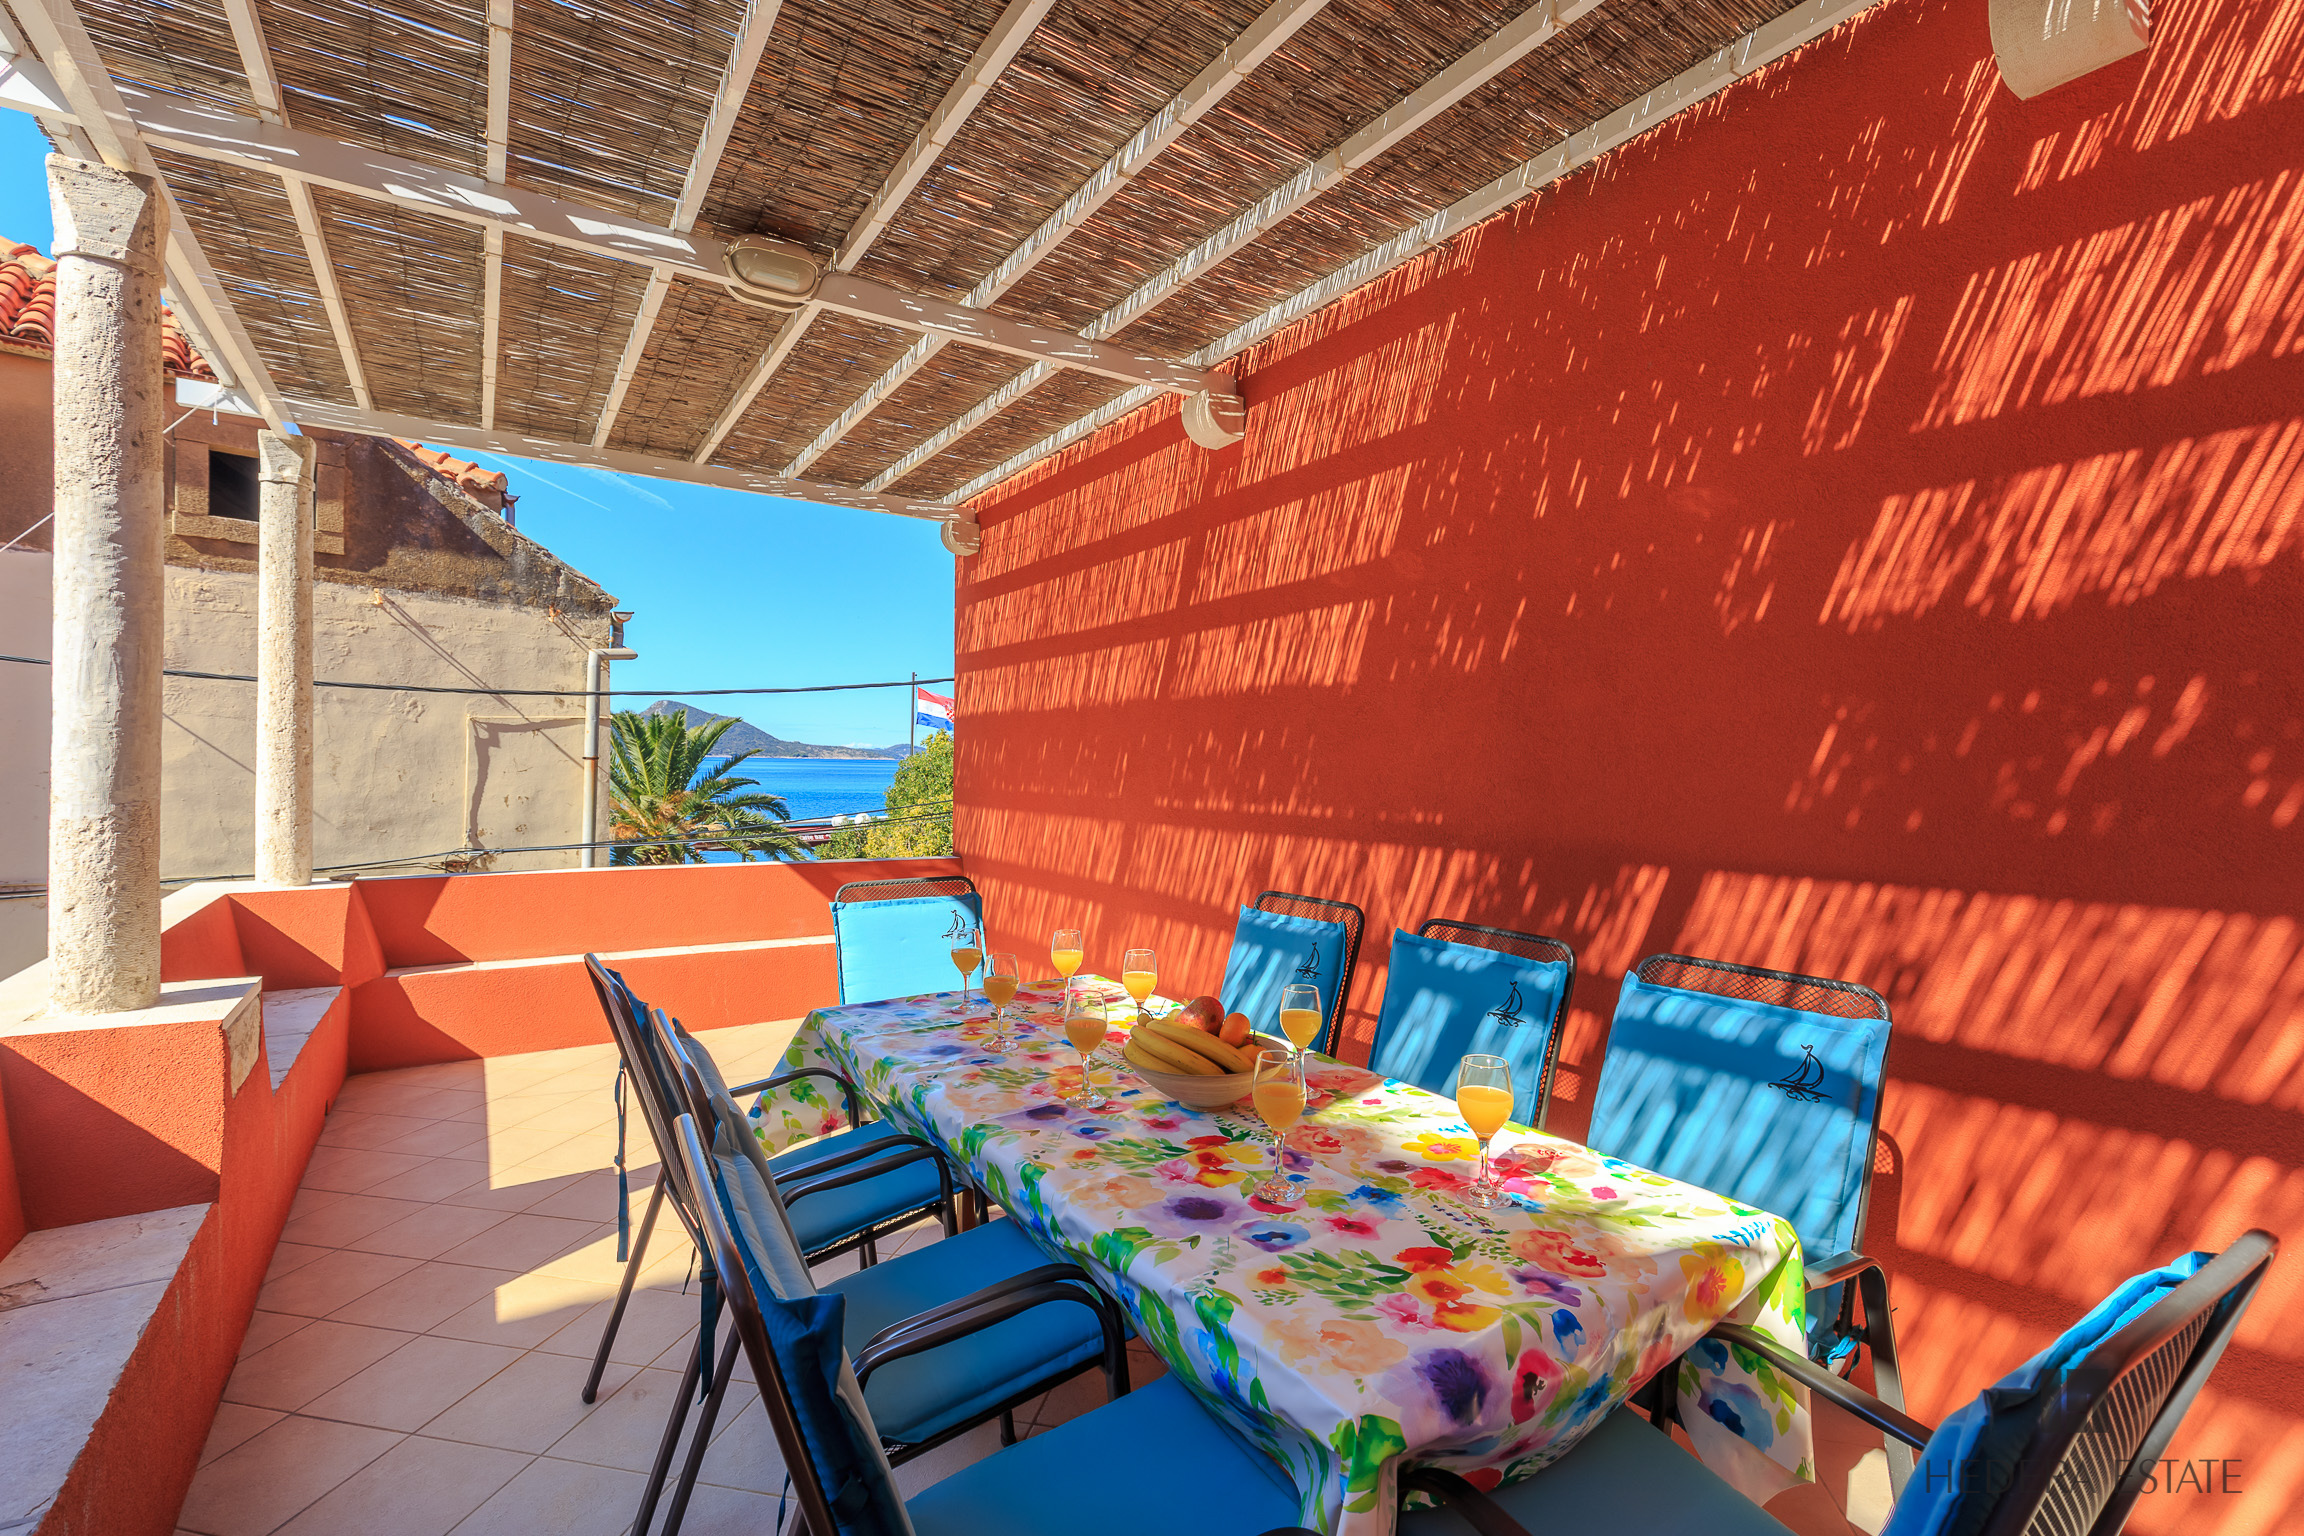 <p>Sleeps 8<br />4 bedrooms<br />4 bathrooms<br />Kitchen, dining area and living room<br />Large terrace, sea view<br />Located on Island of Kolocep<br />Distance from Dubrovnik: 20 minutes drive with ferry boat</p>